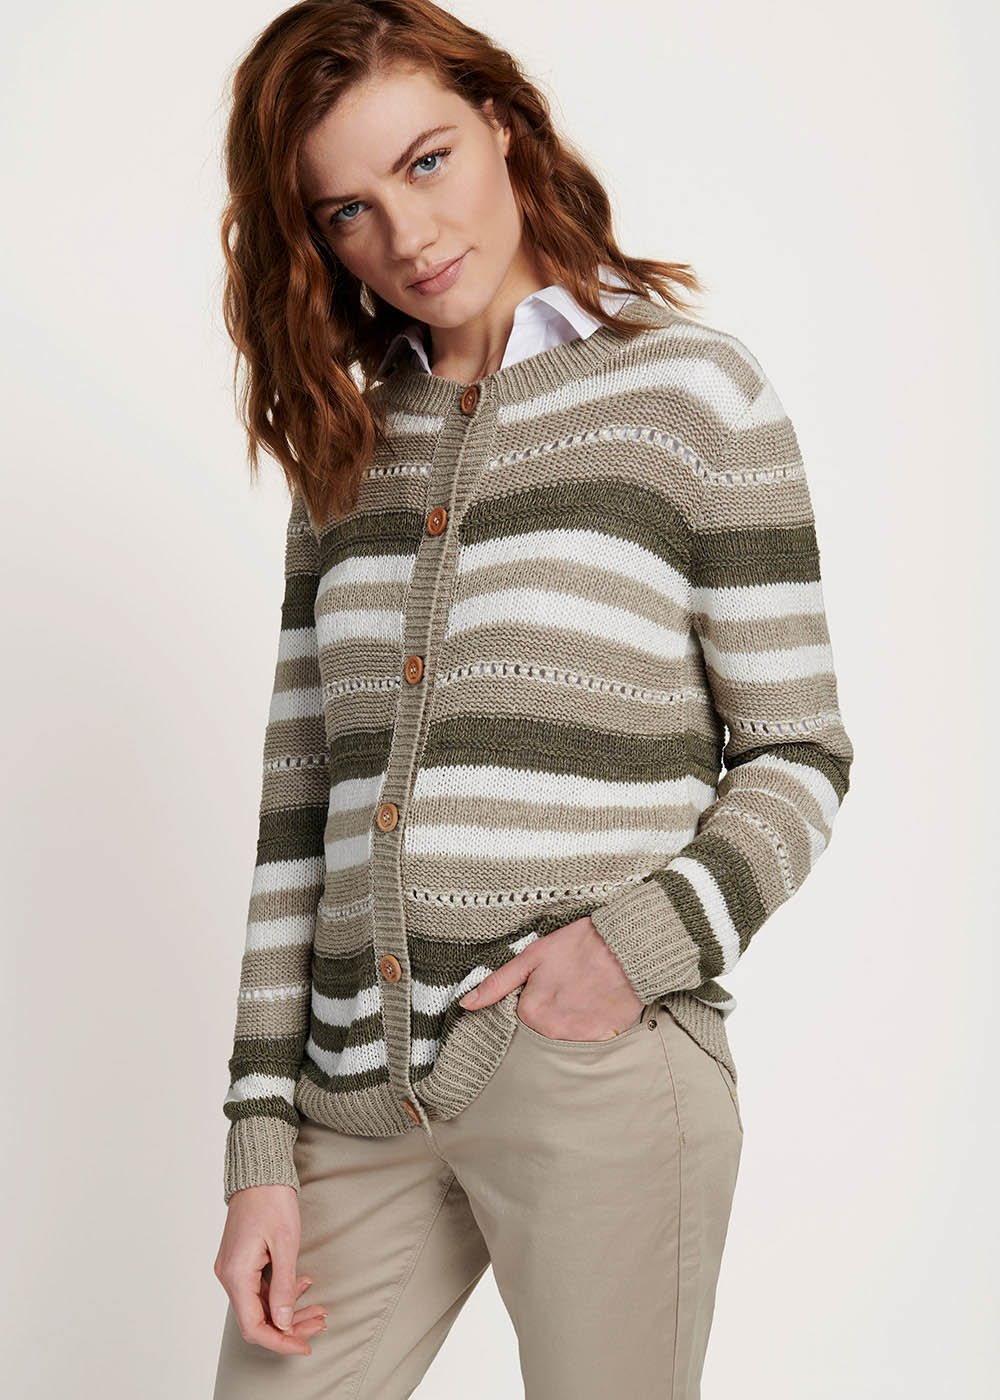 Cardigan Clair righe multicolor - Timo / Tofu / Stripes - Donna